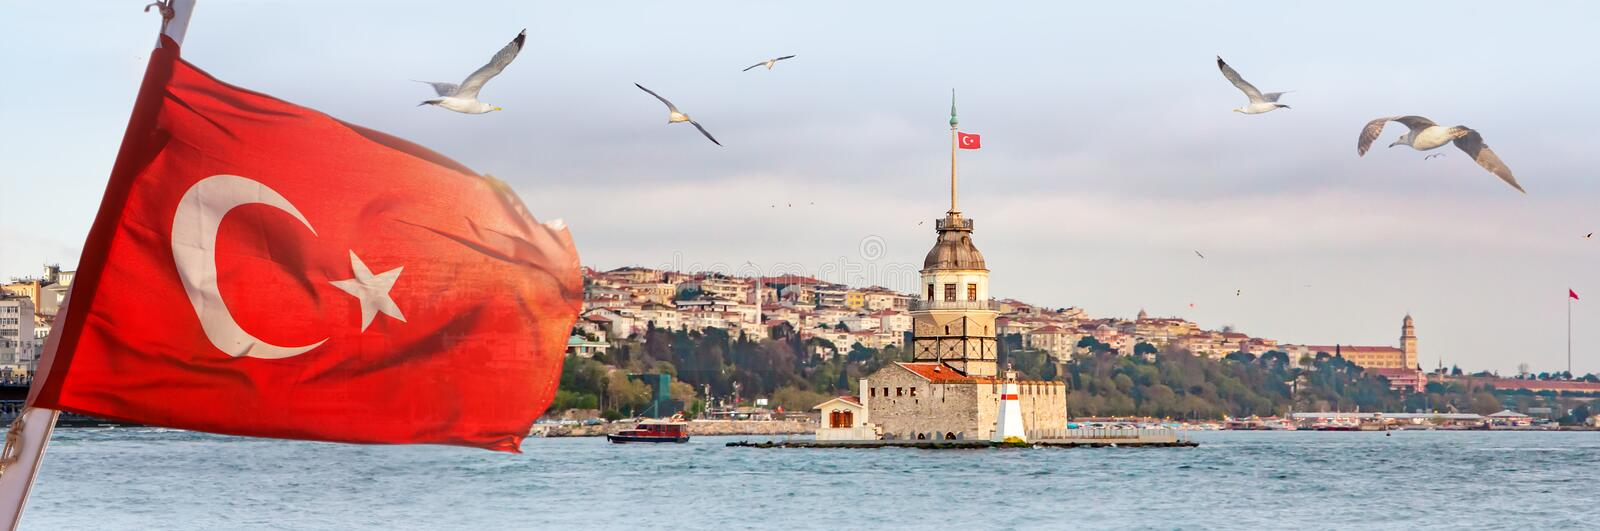 Panorama of Istanbul with Maiden Tower, kiz kulesi, at skyline and seagulls over the sea, wide landscape with the Turkish flag in. The foreground, travel royalty free stock photo